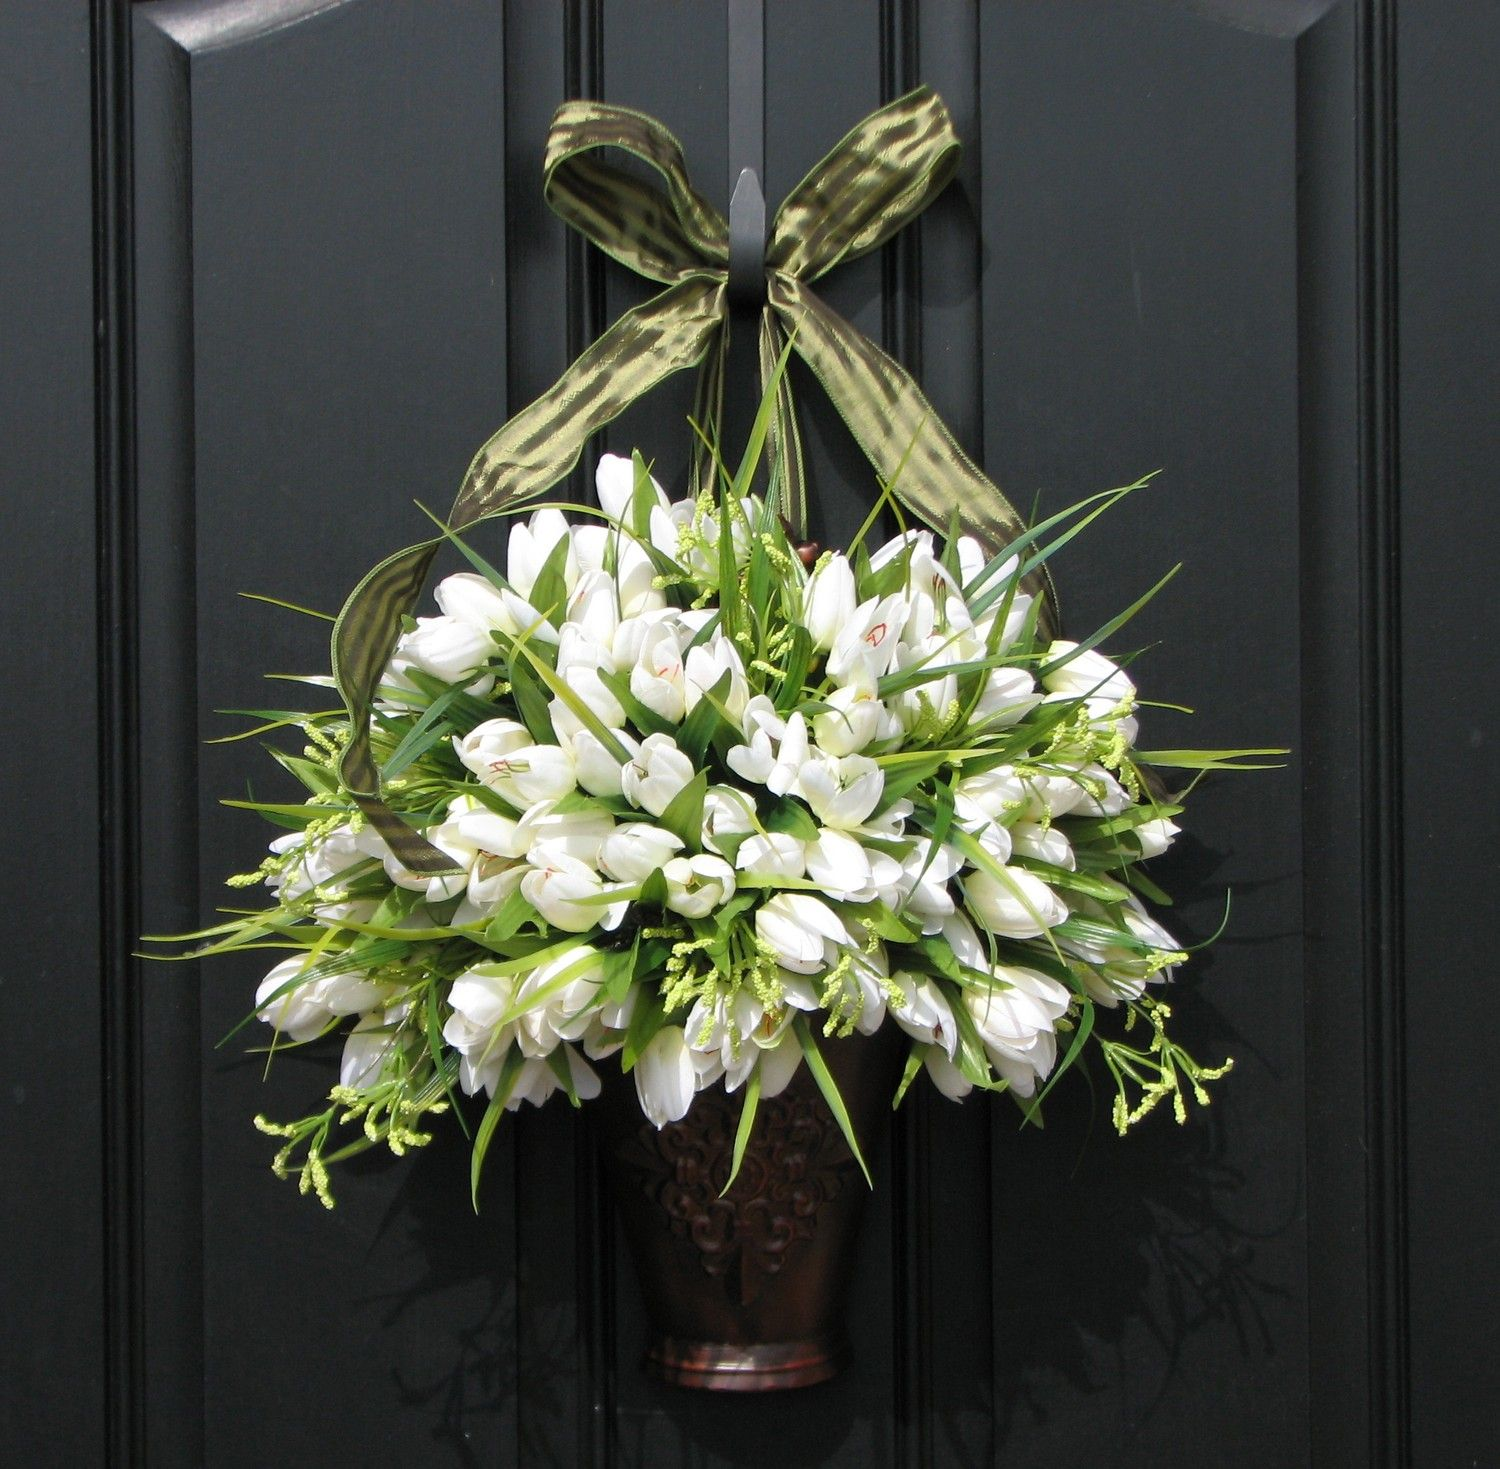 Front door decorations for spring spring tulips for Front door decor